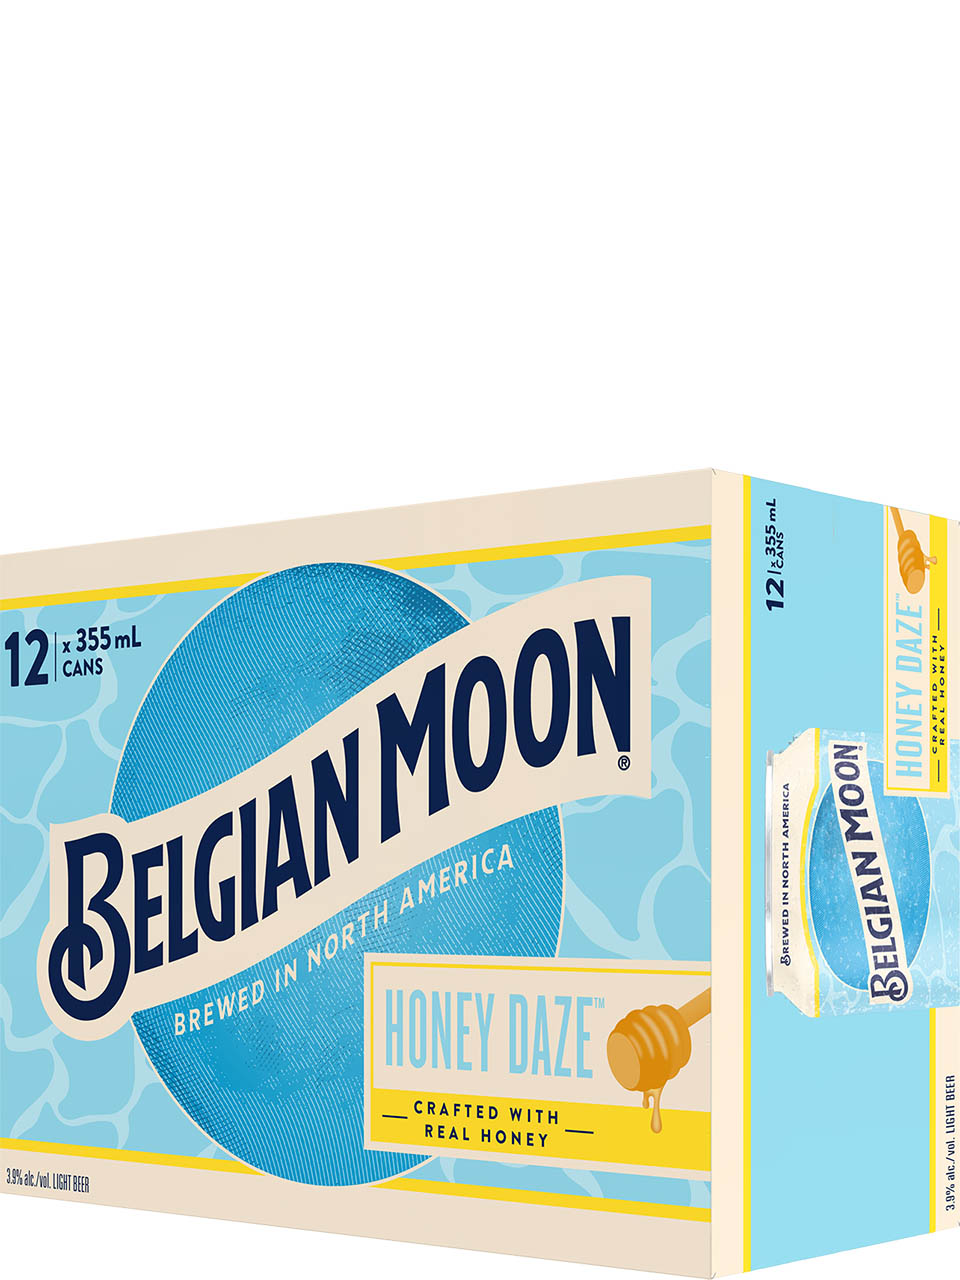 Belgian Moon Honey Daze 12 Pack Cans